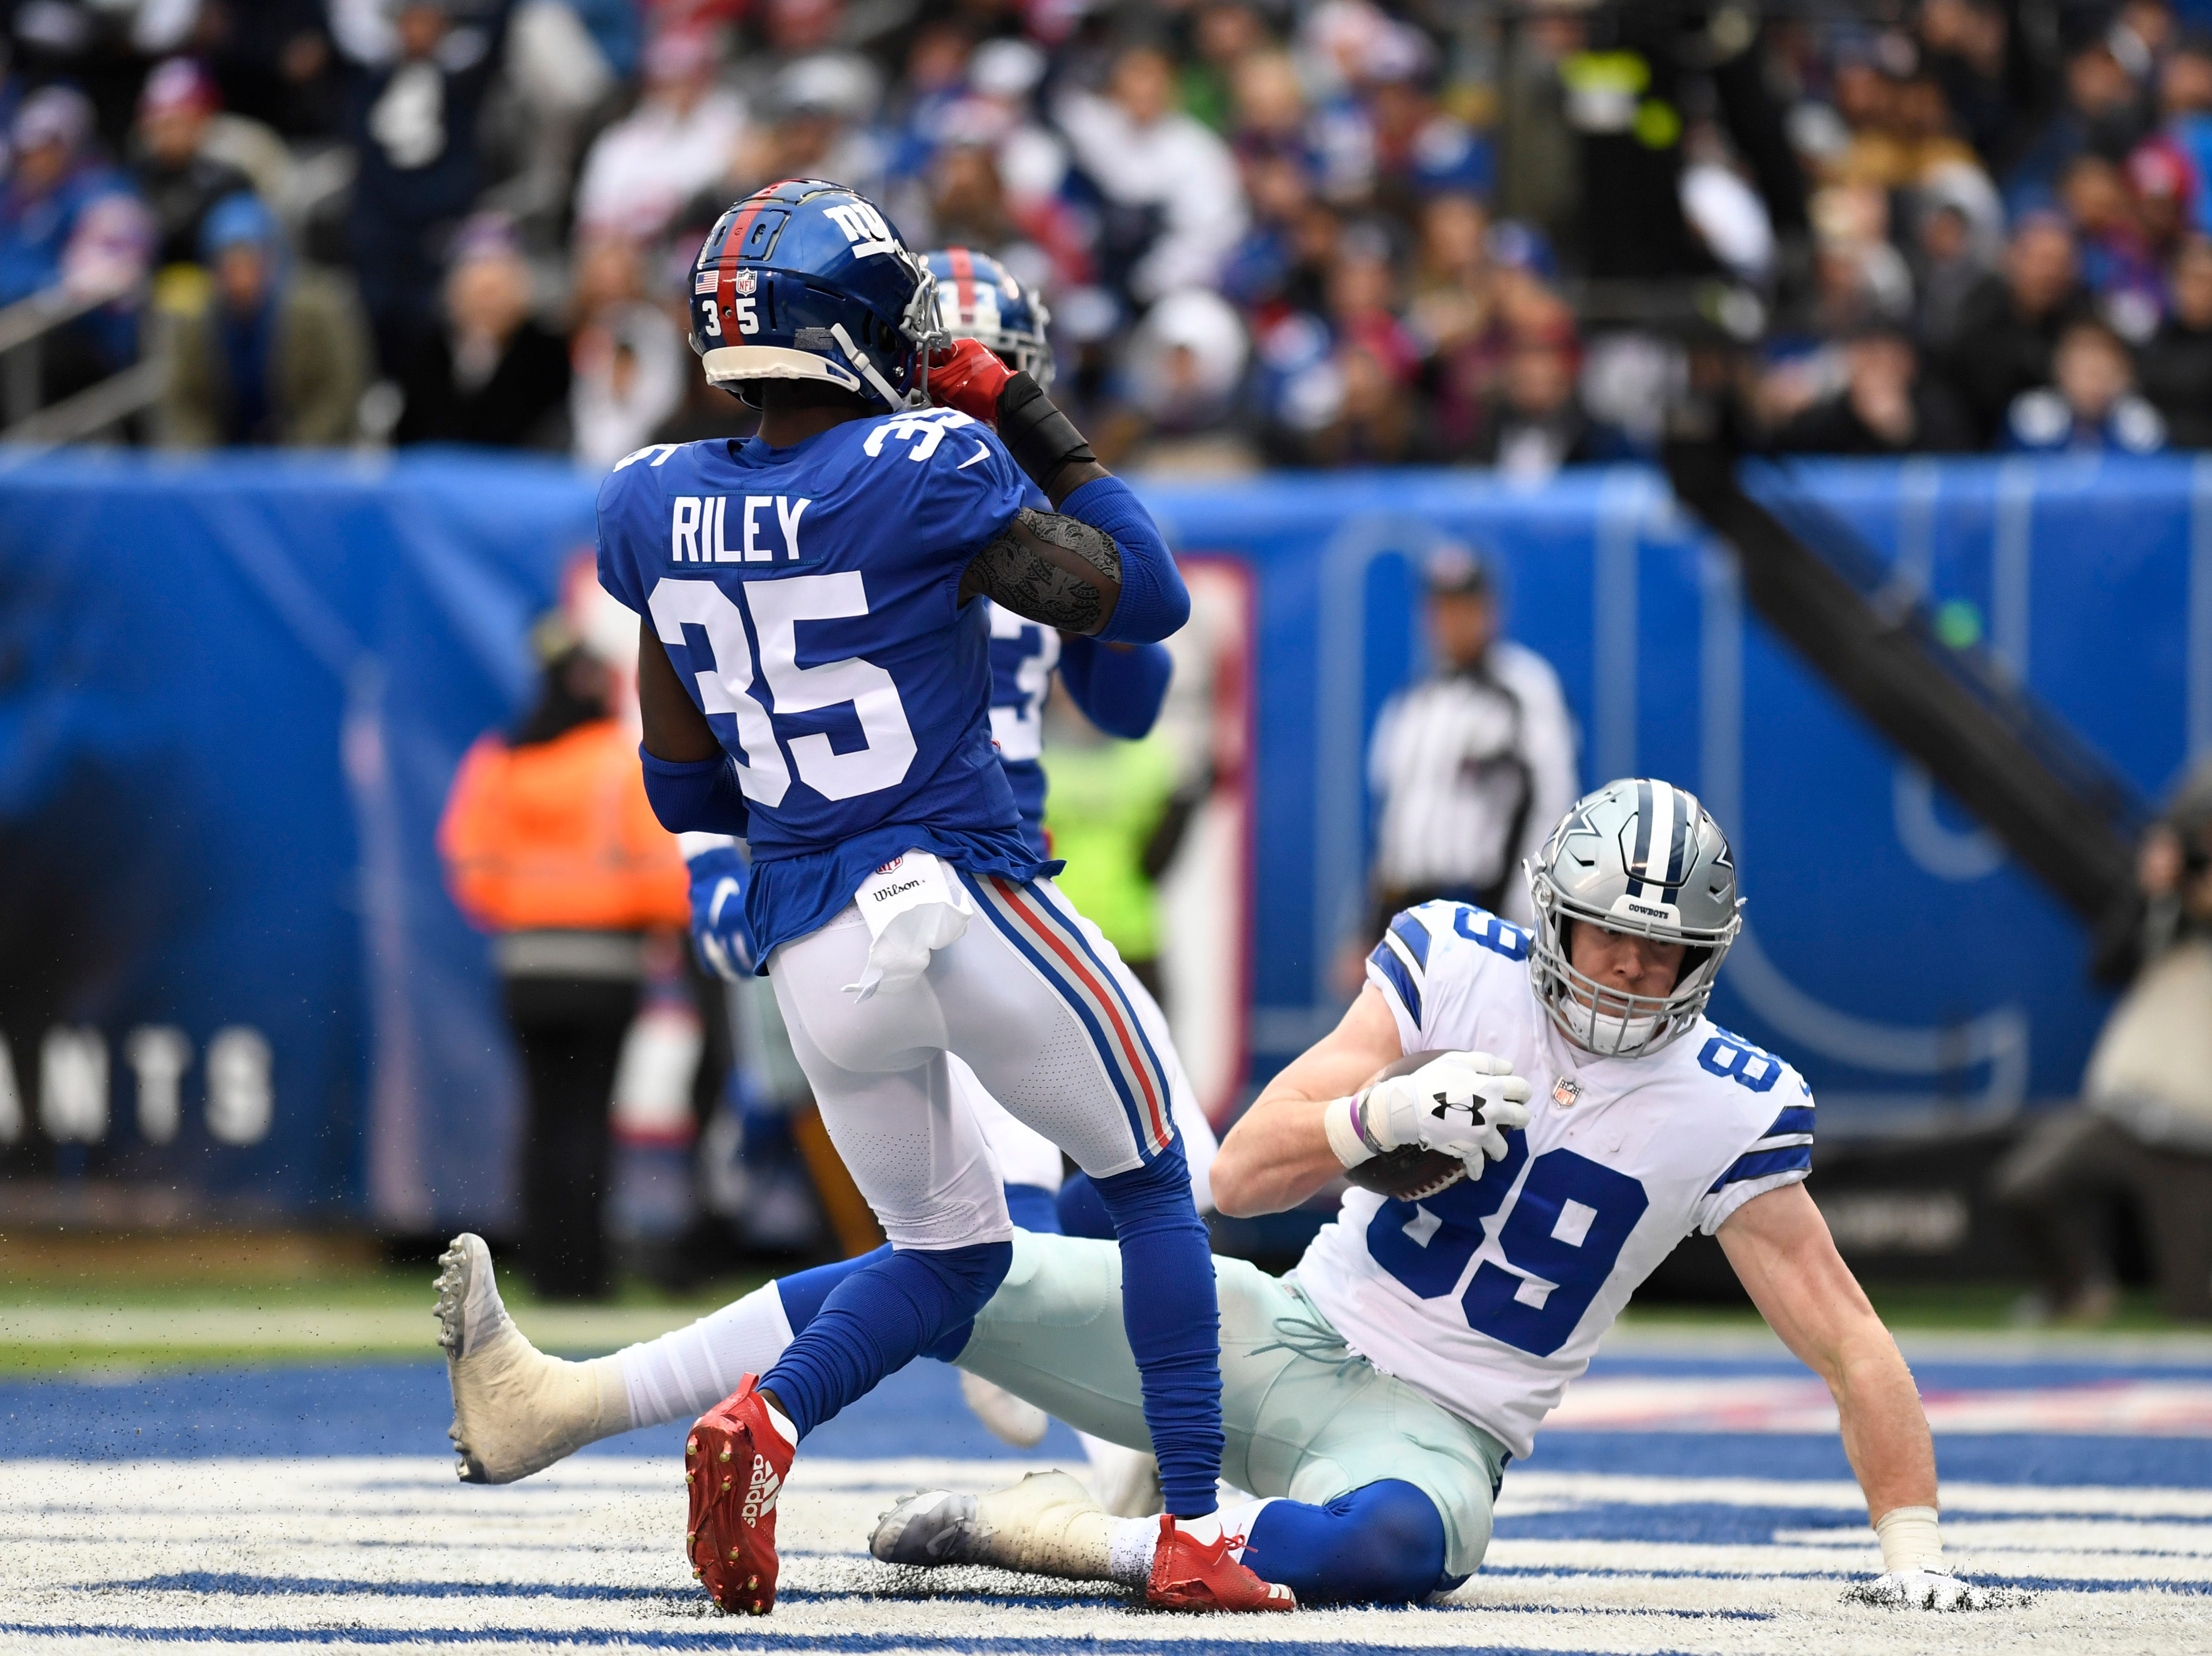 Dallas Cowboys tight end Blake Jarwin (89) makes a touchdown catch in the first half. The New York Giants face the Dallas Cowboys in the last regular season game on Sunday, Dec. 30, 2018, in East Rutherford.